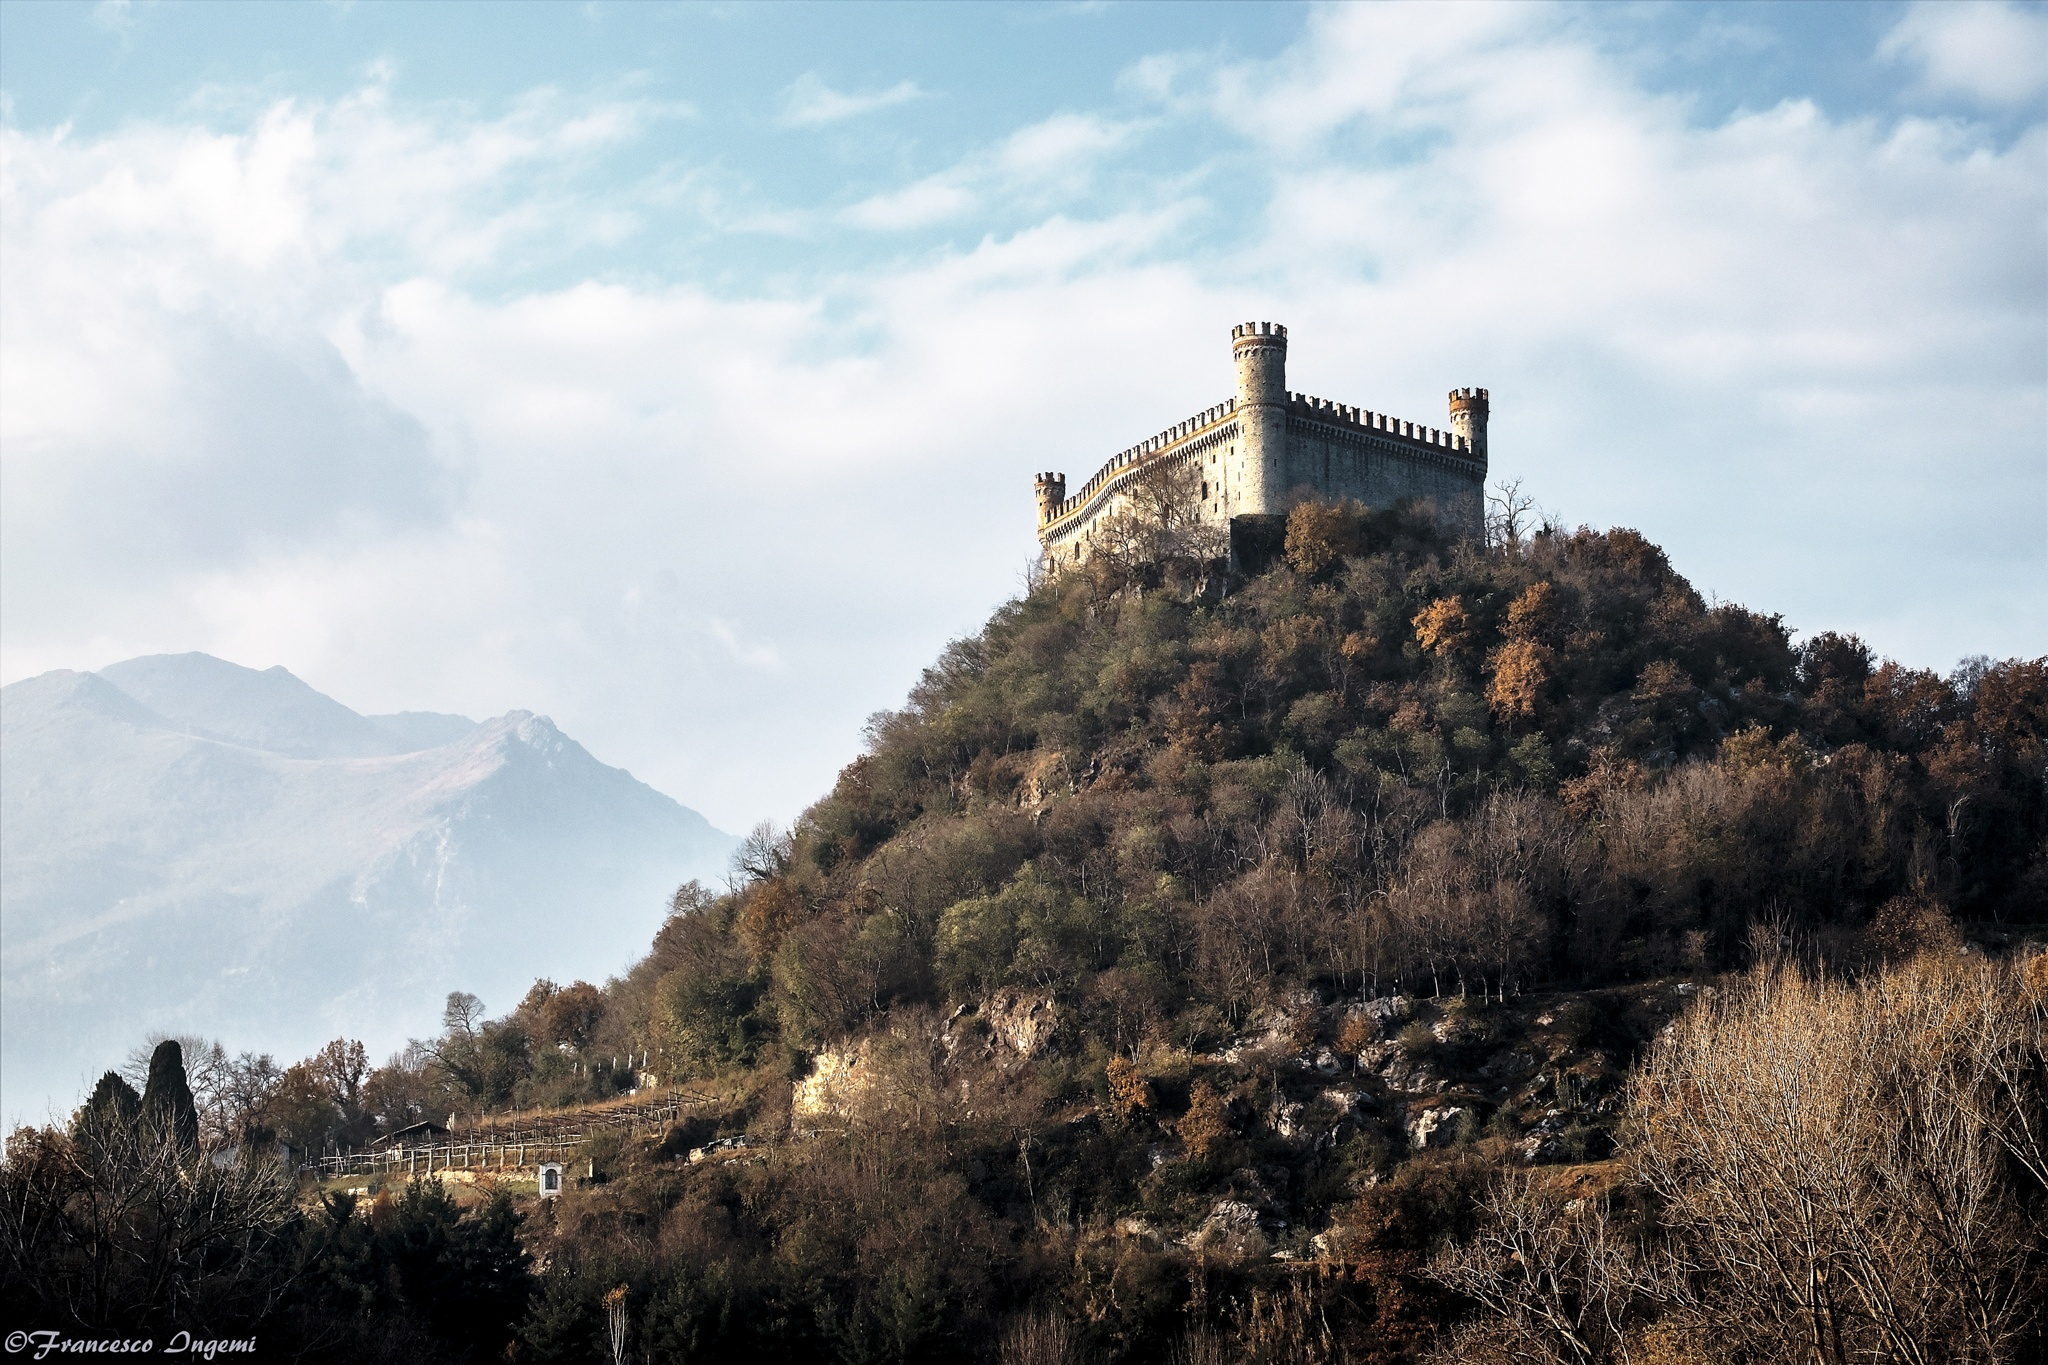 The Castle of Montalto Dora by Francesco Ingemi